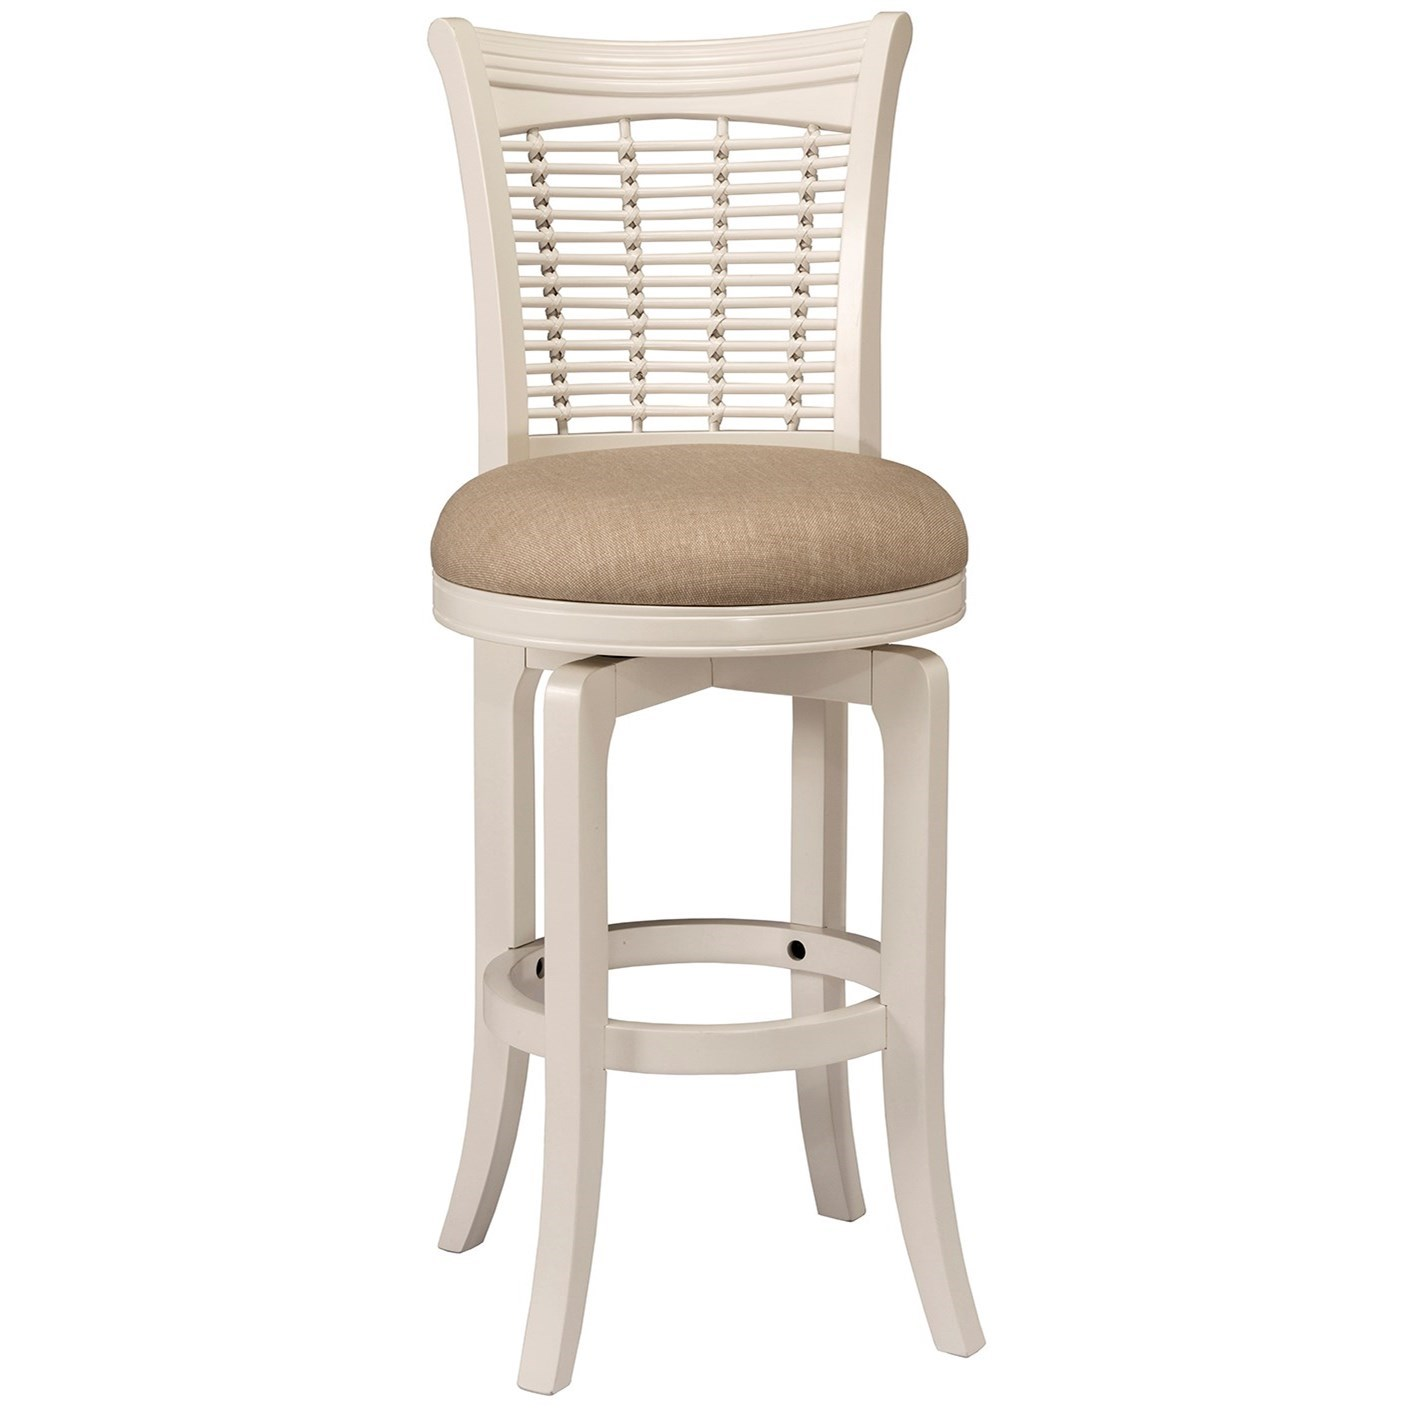 Bayberry White Swivel Bar Stool by Hillsdale at Gill Brothers Furniture